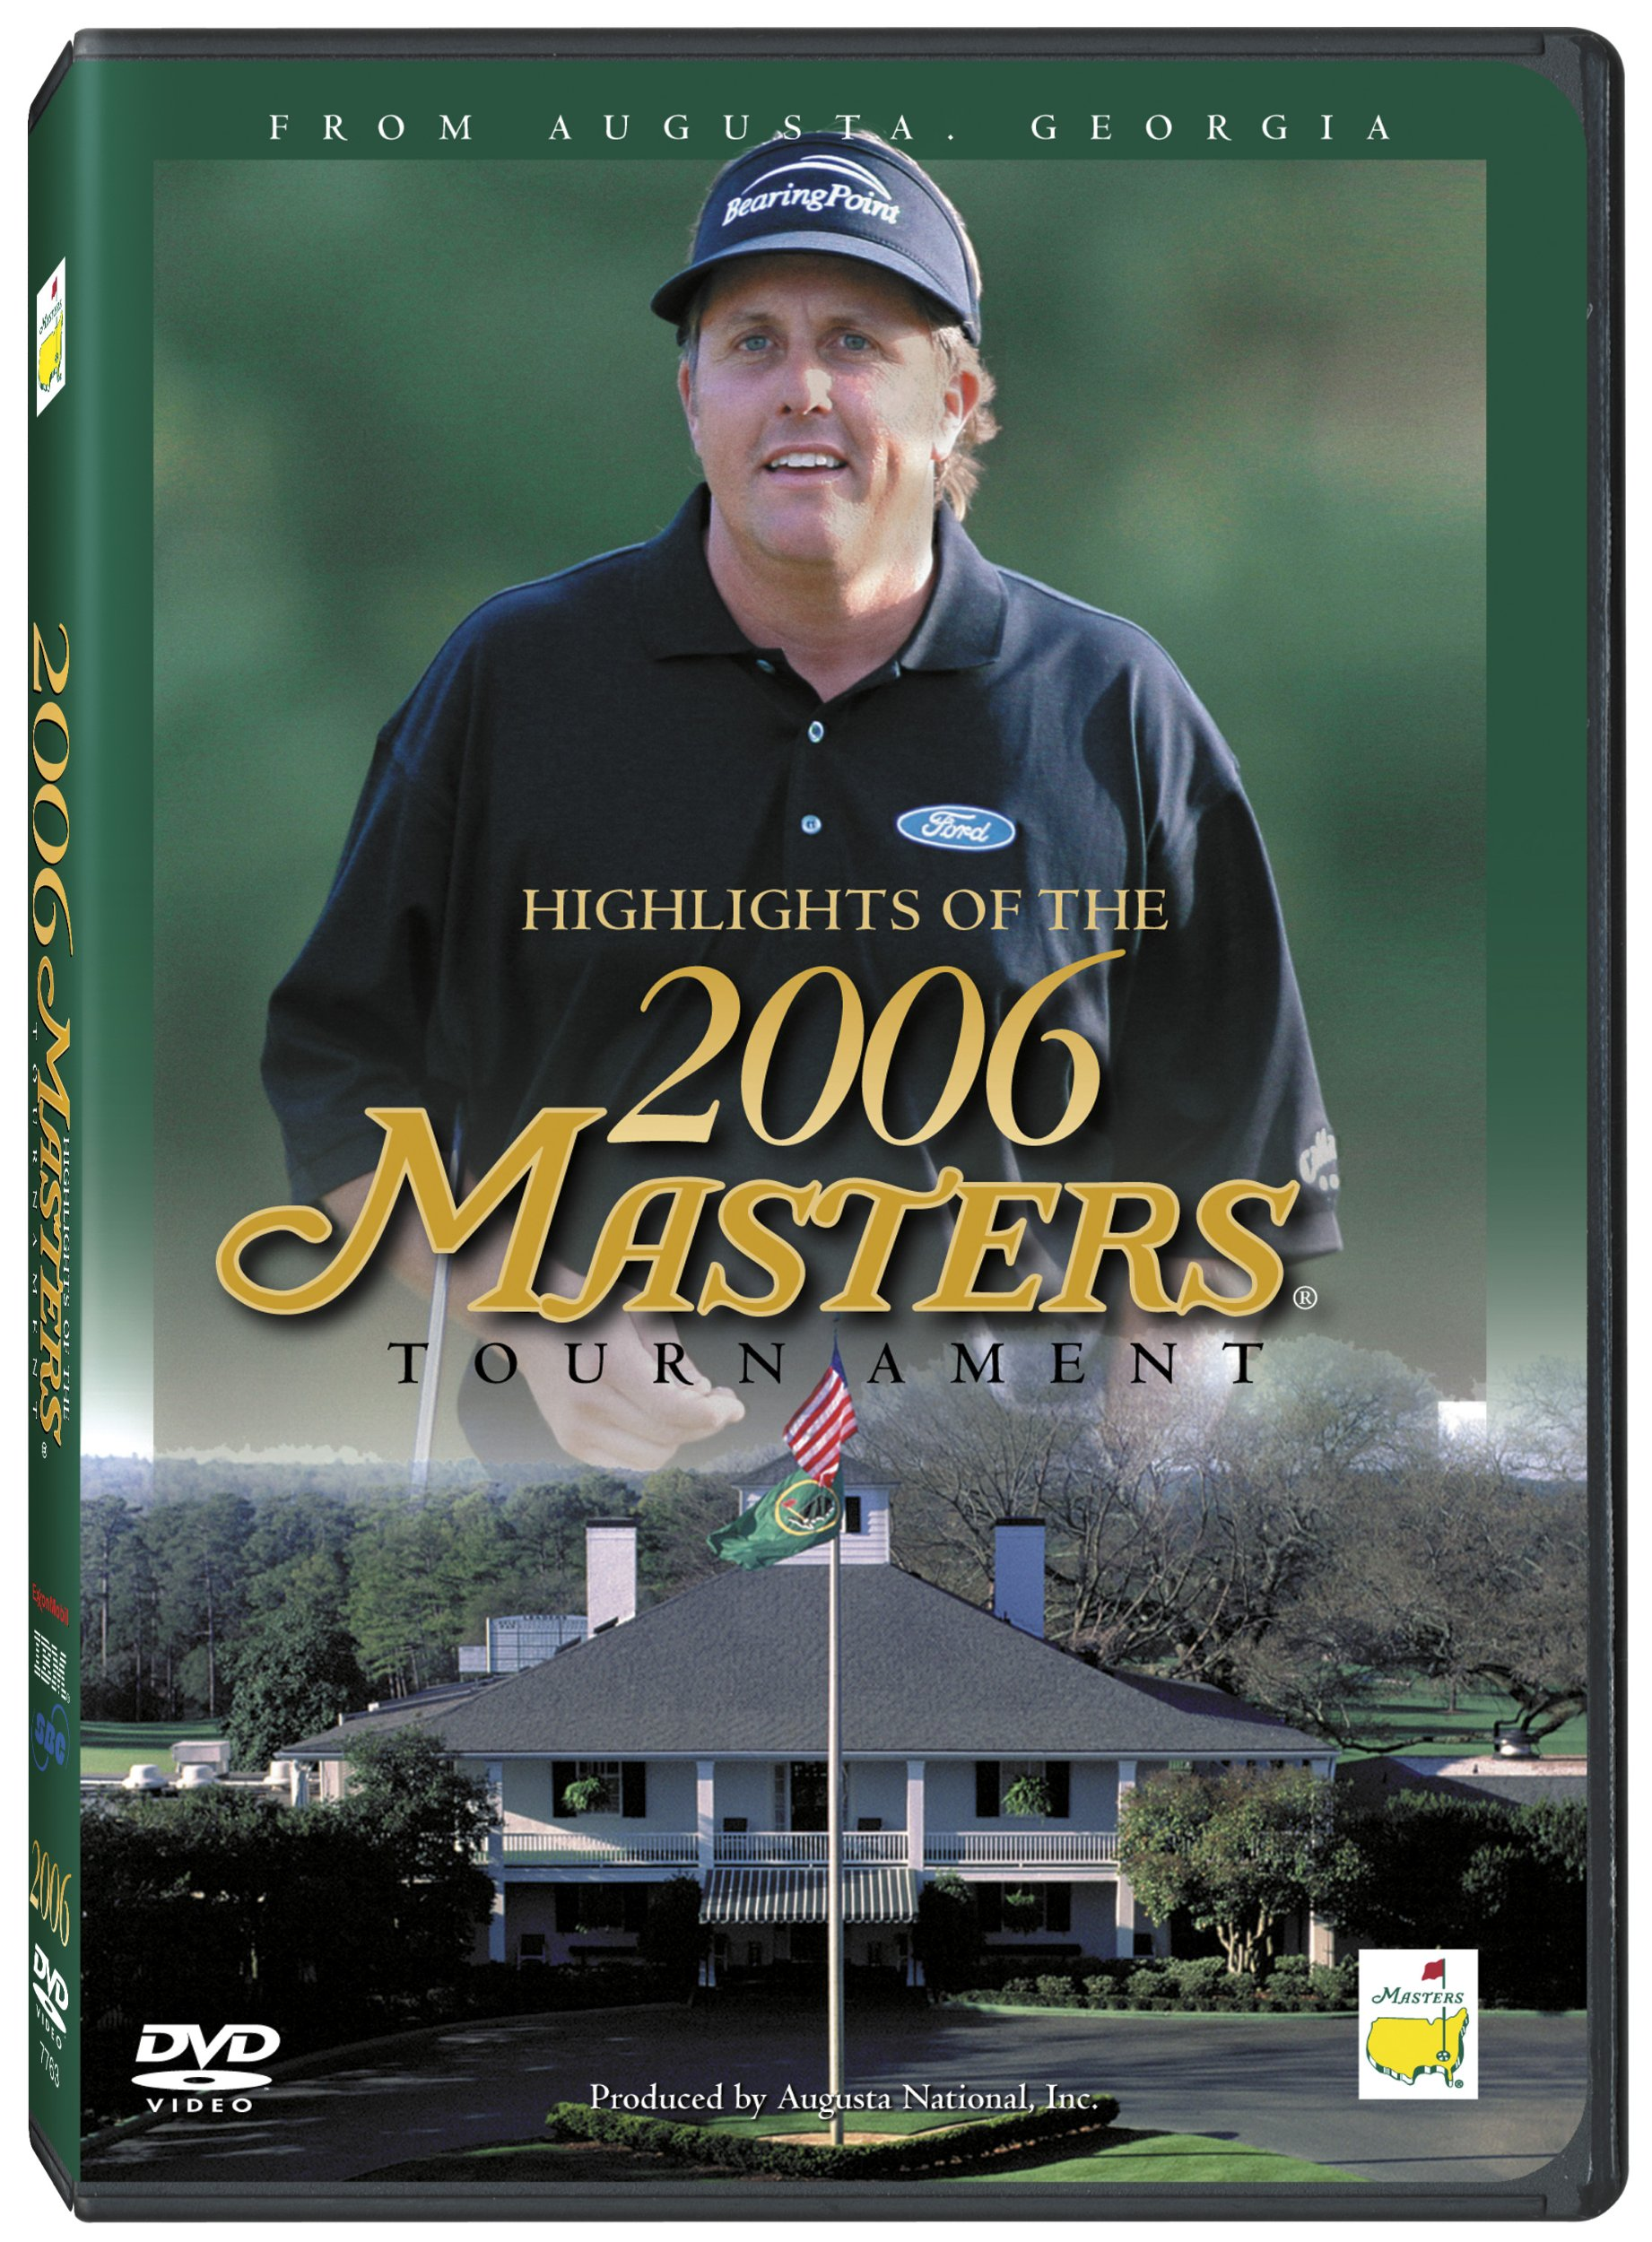 DVD : Highlights Of The 2006 Masters Tournament (DVD)